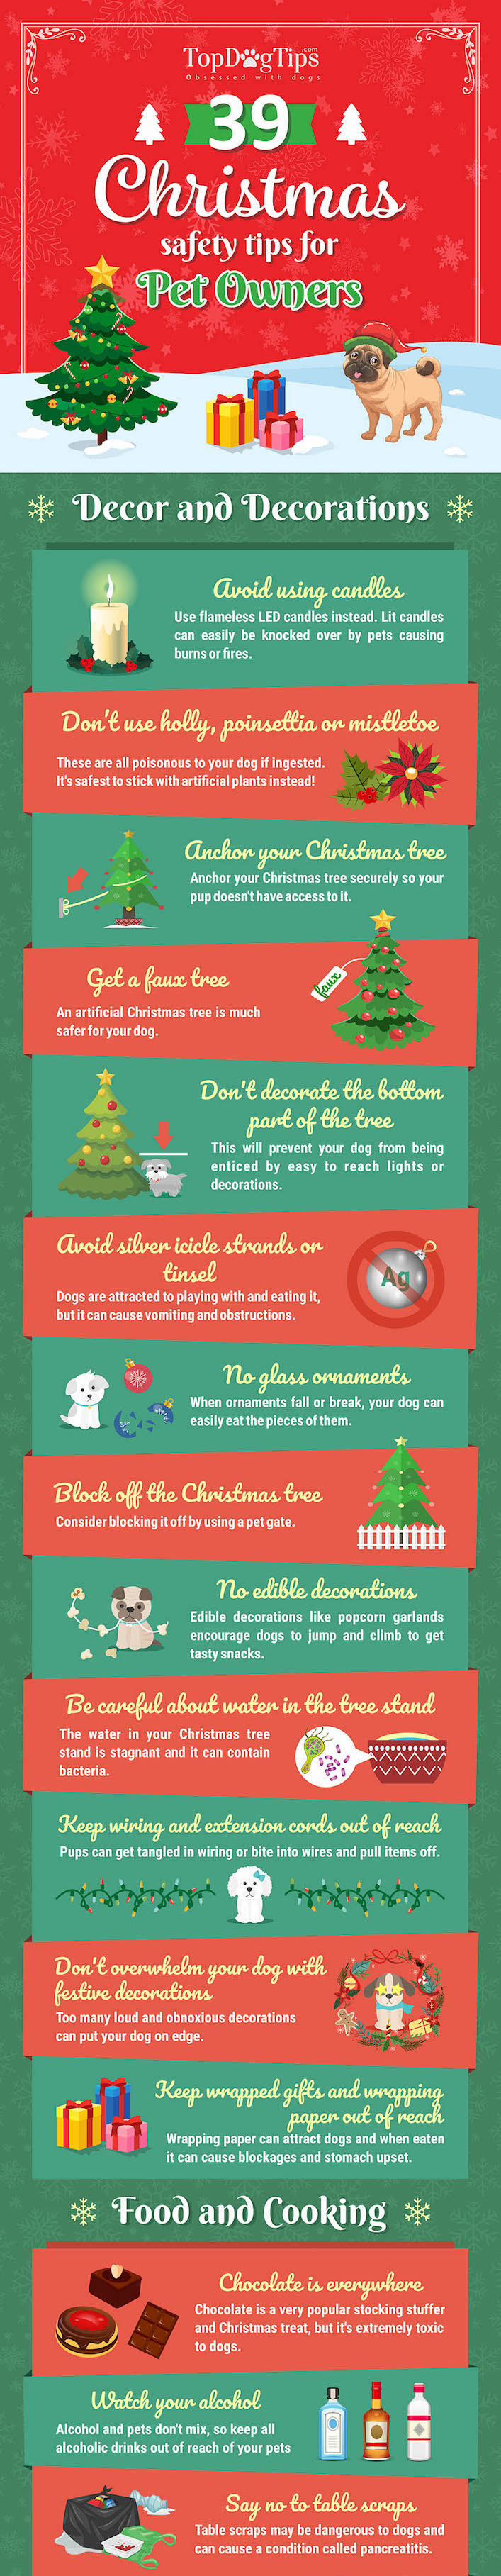 christmas safety tips for pets 1